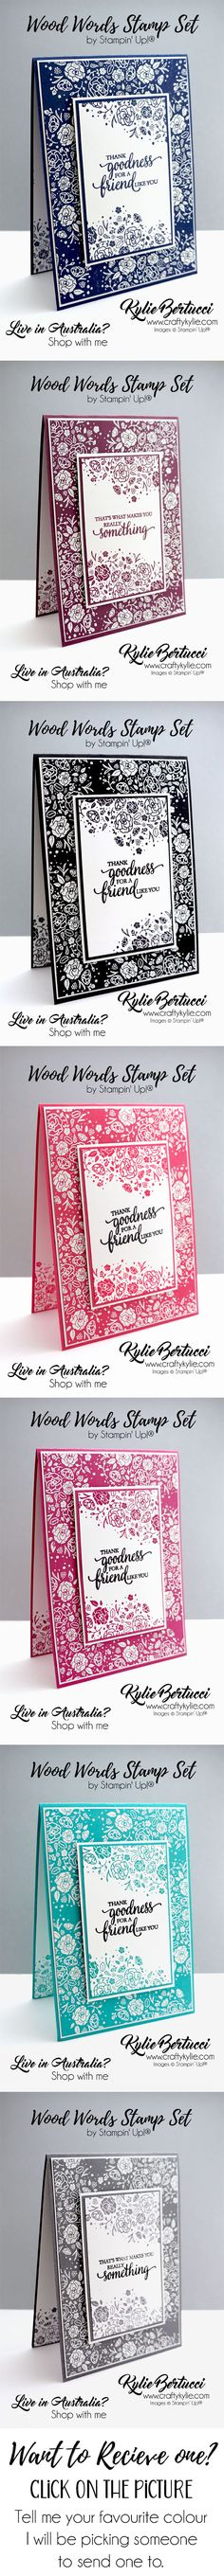 Want to receive one of these cards in the mail with a personal message from Kylie? Click on the picture and tell Kylie your favourite colour! #stampinup #cardmaking #handmadecard #rubberstamps #stamping #kyliebertucci #givewithnoexpectation #makeacardsendacard #imbringingrakcardsback #randomactsofkindness